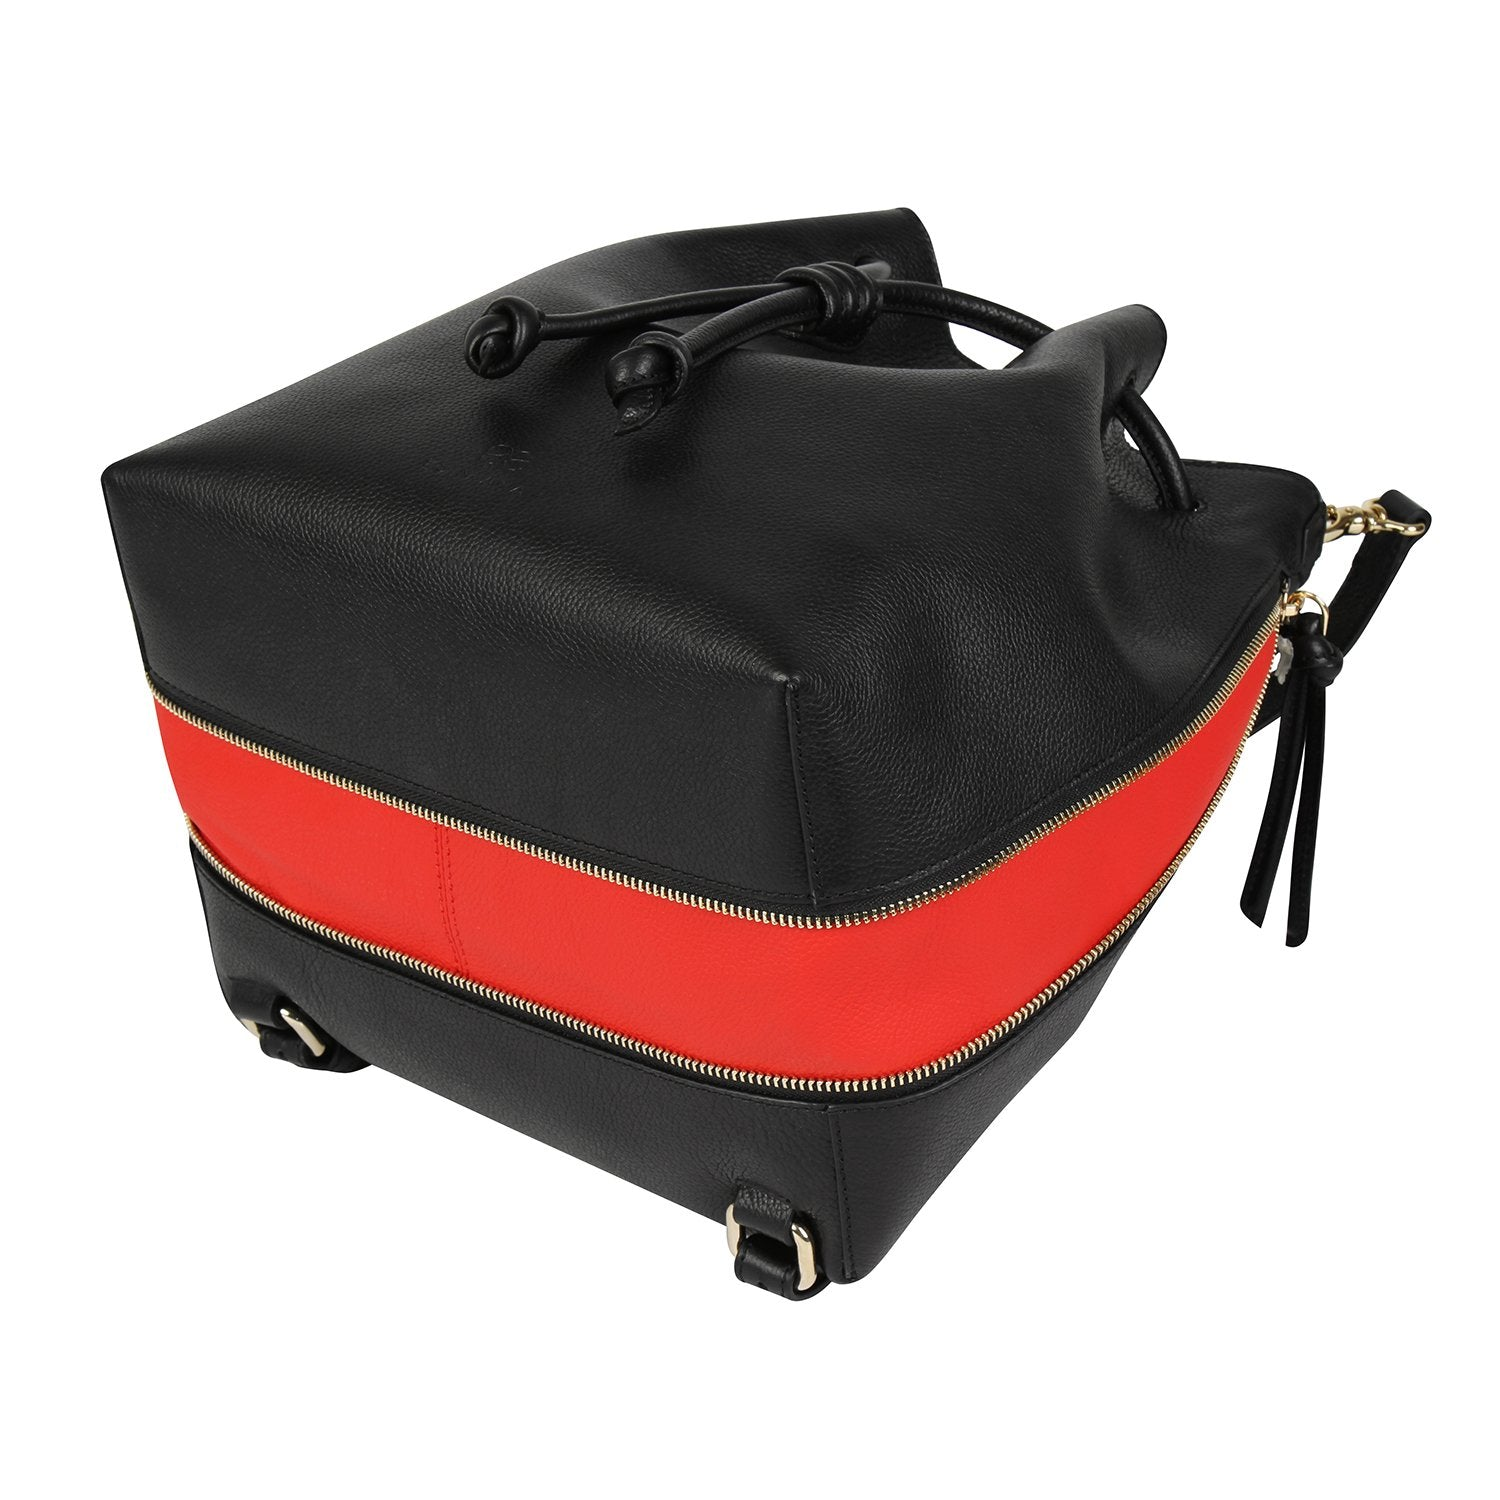 A convertible laptop size womens black leather backpack with red that could be used as a crossbody as well as a bucket bag, base image.